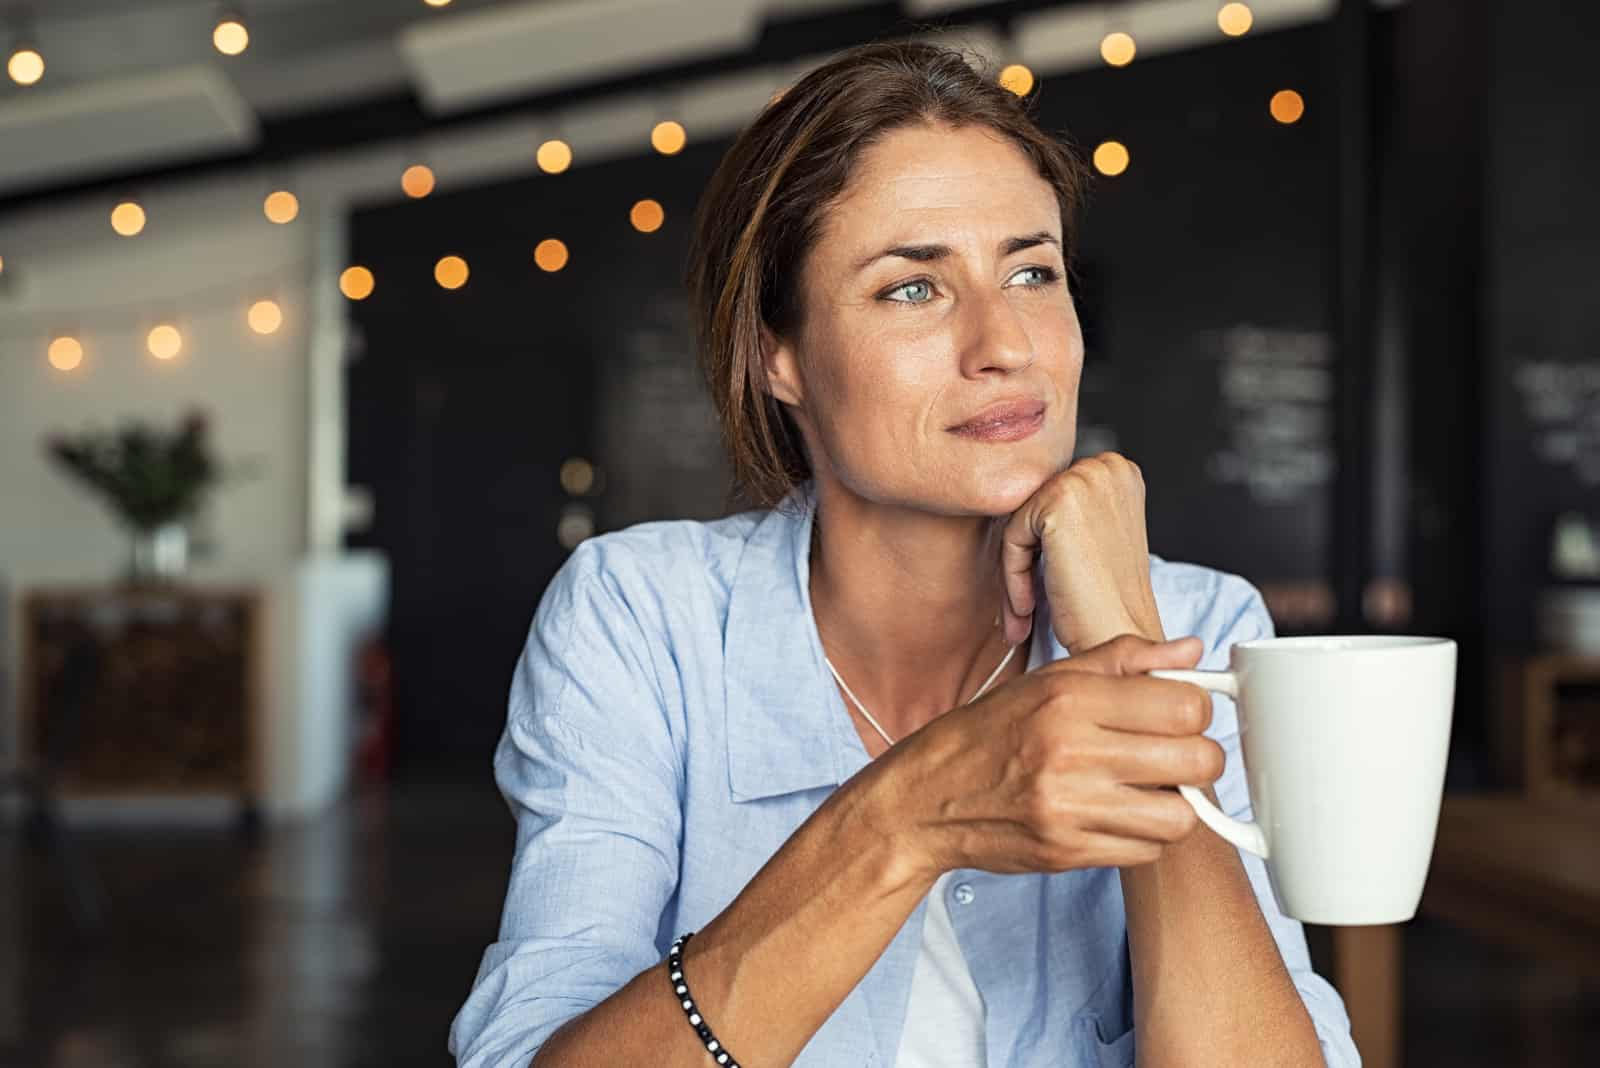 mature woman sitting in cafeteria holding coffee mug